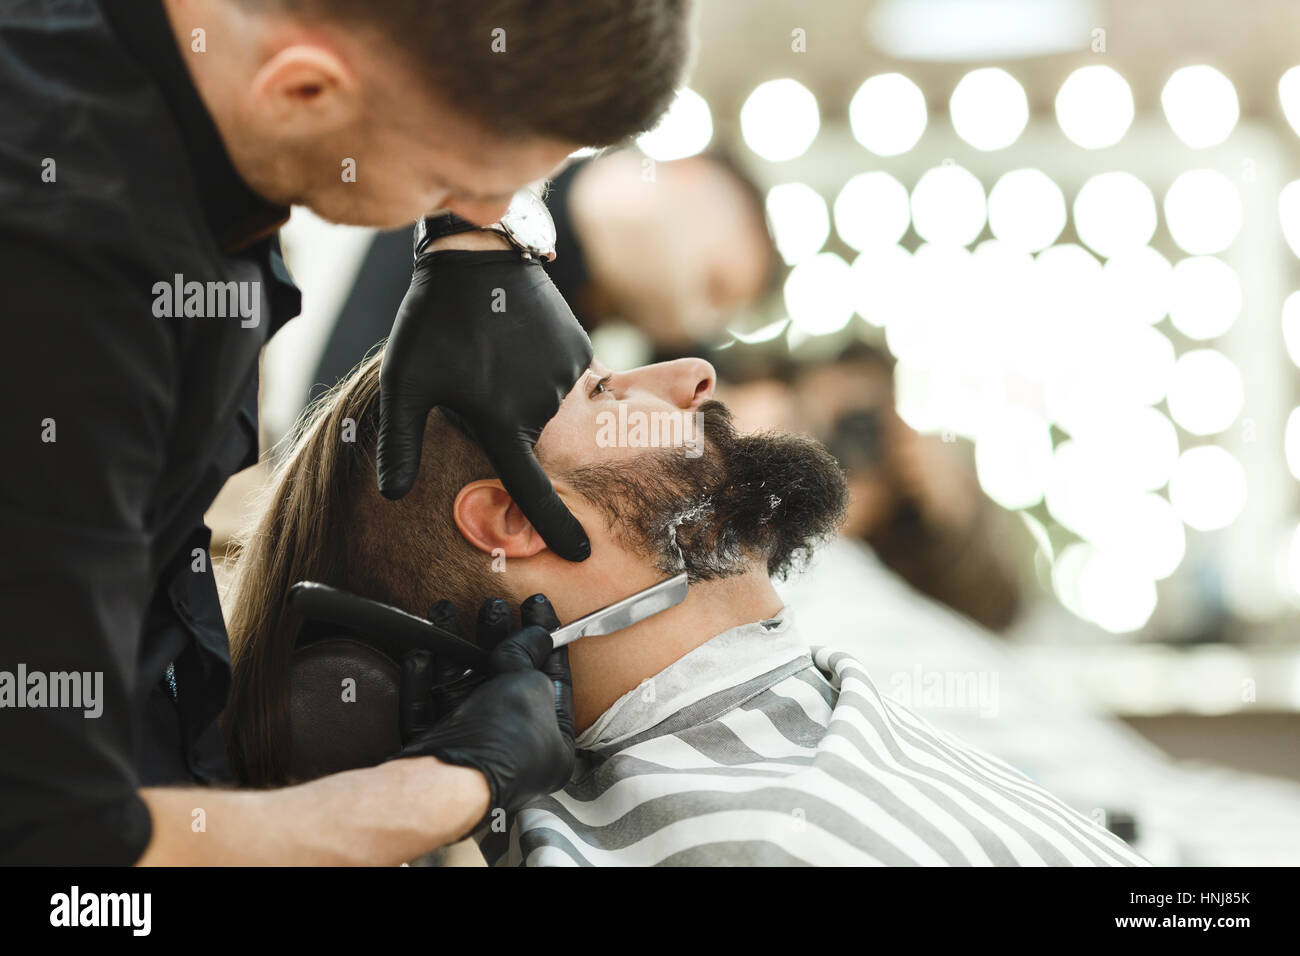 Barber making beard form for man - Stock Image